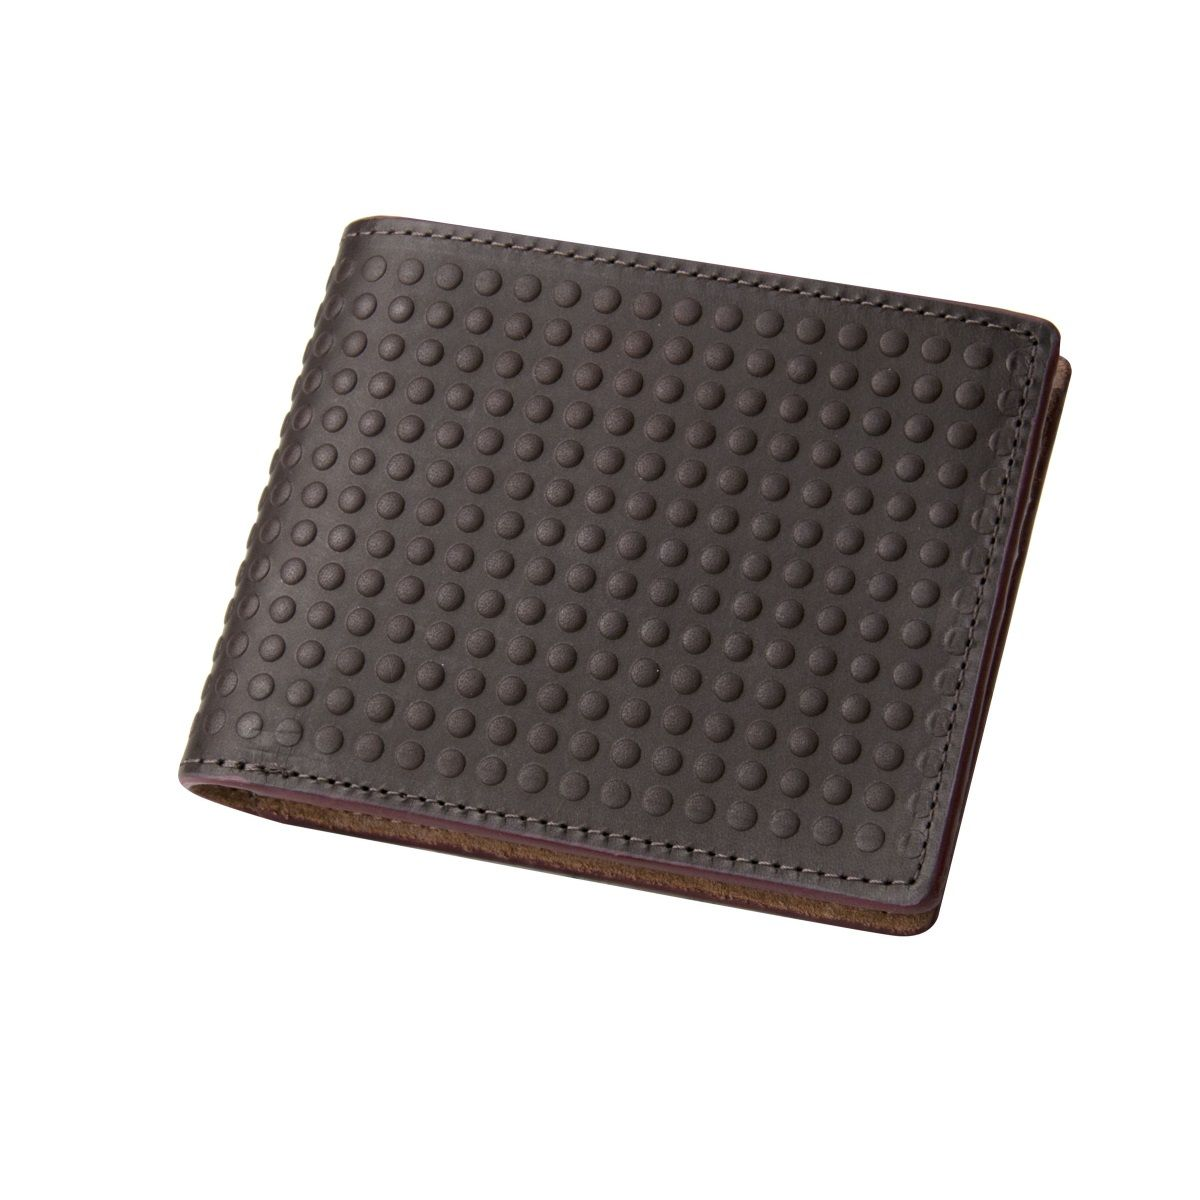 J.FOLD Altrus Leather Wallet - Brwon